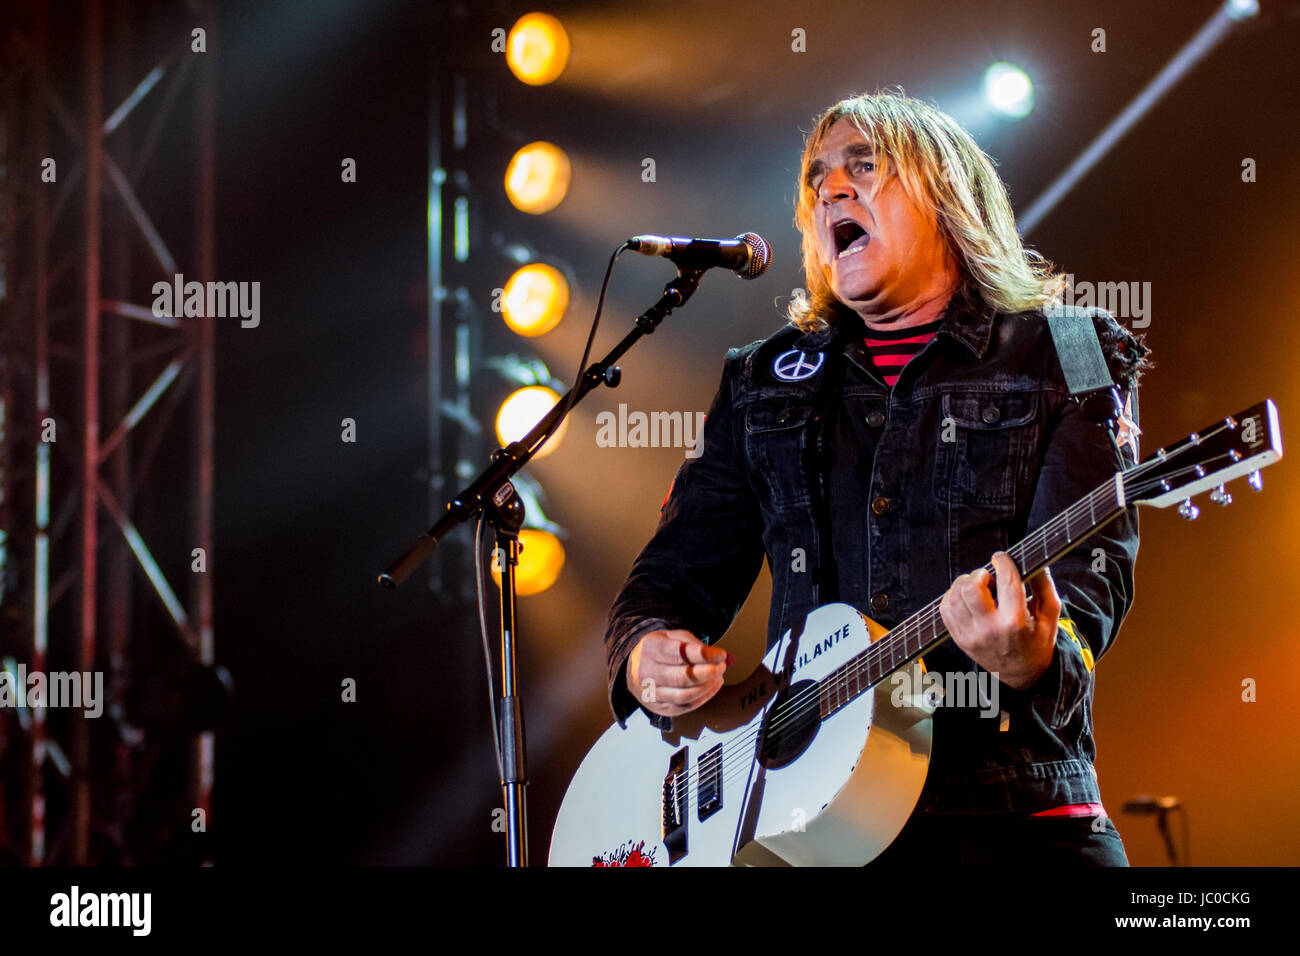 Mike Peters with The Alarm at The Isle of Wight Festival 2017 Stock Photo